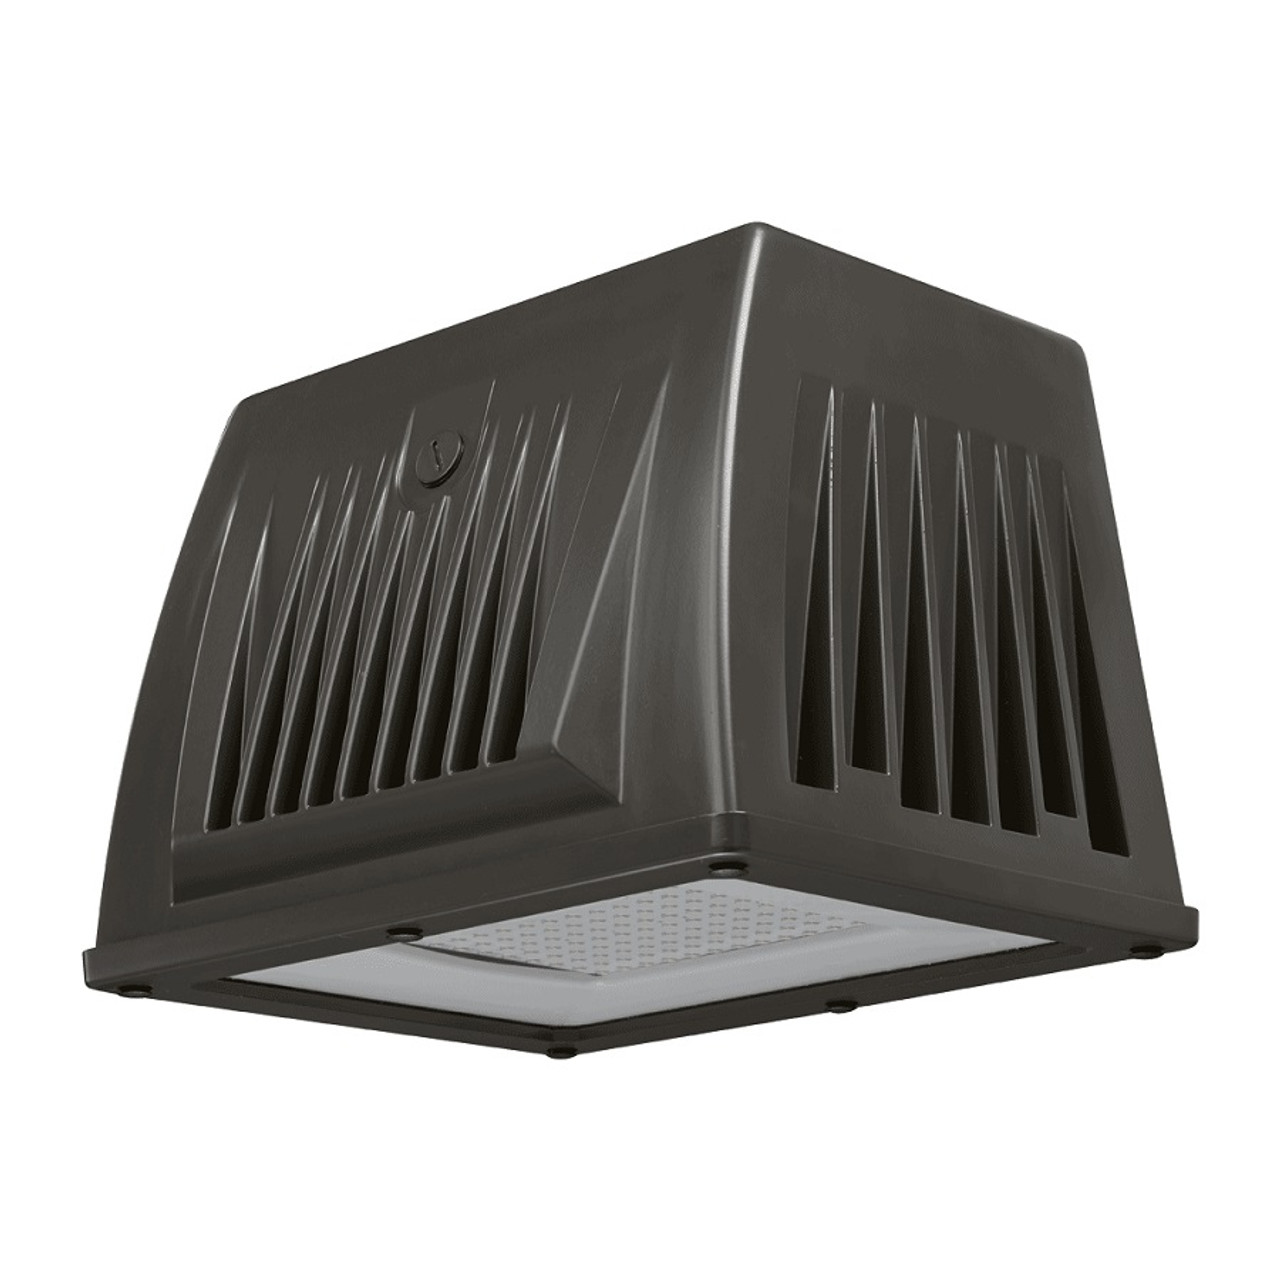 Atlas 102W LED Alpha Wall Pack Pro Wall Light